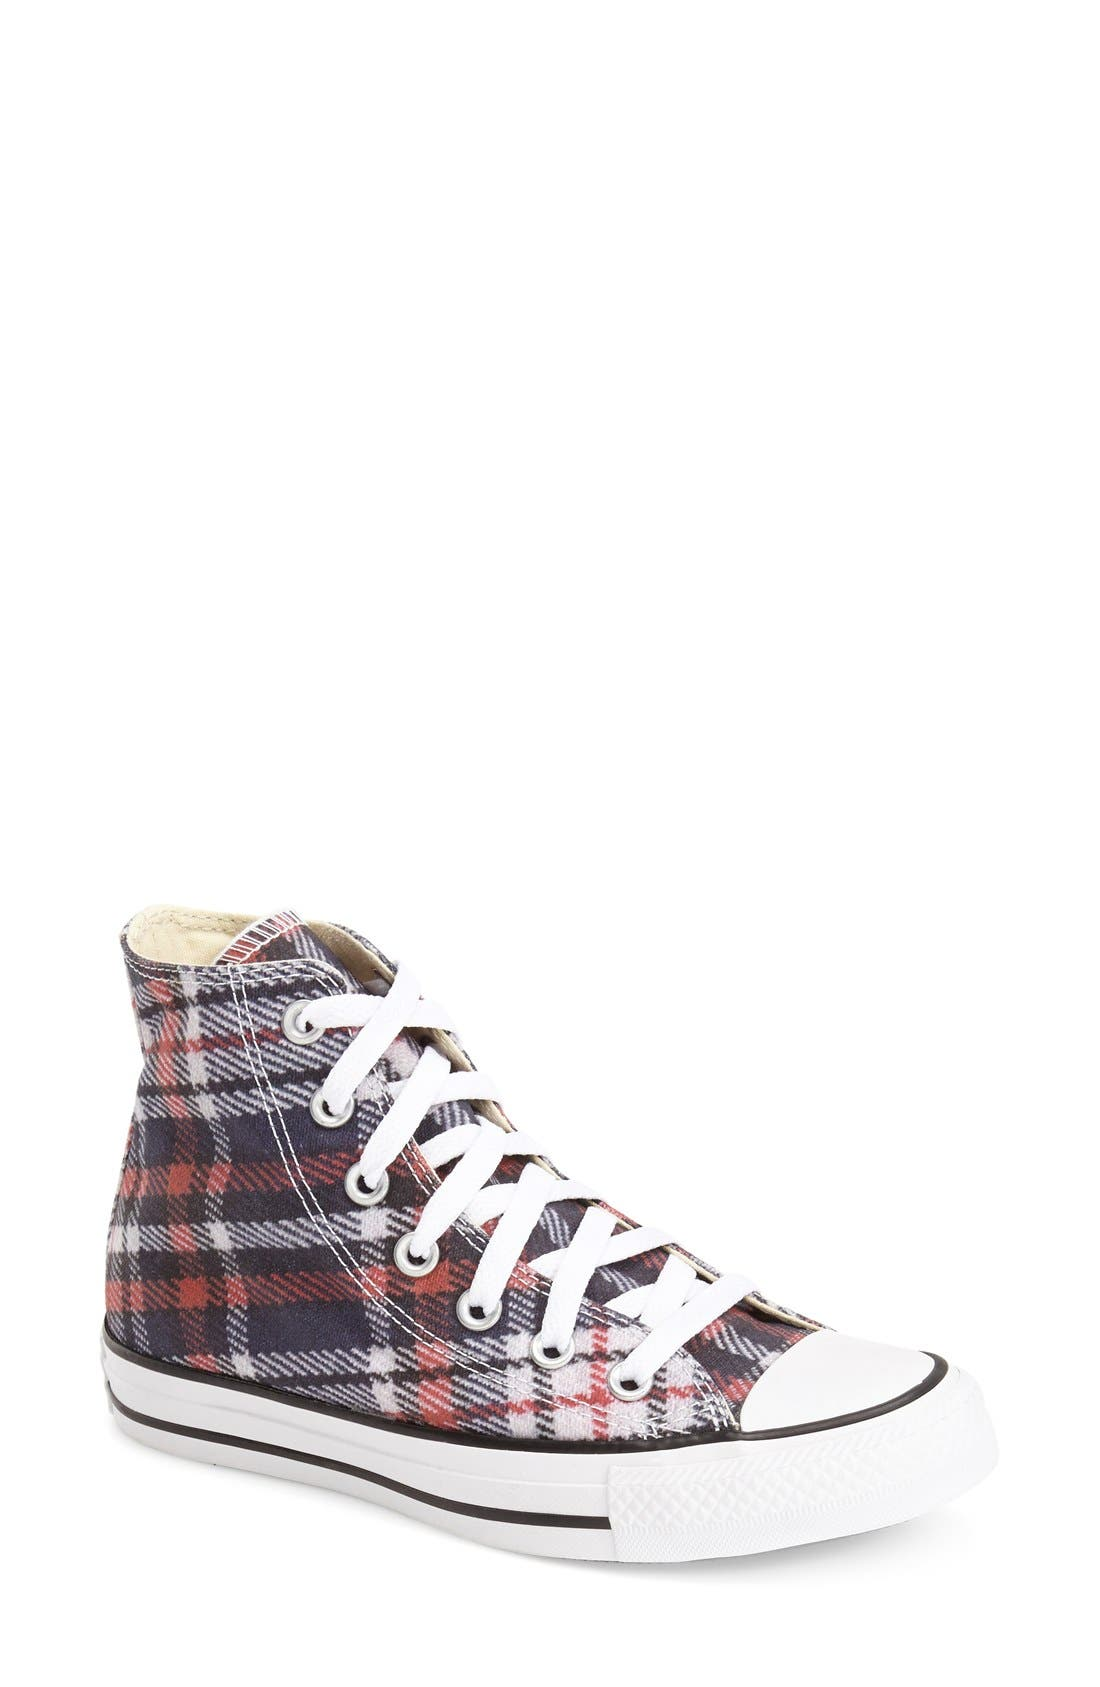 Alternate Image 1 Selected - Converse Chuck Taylor® All Star® Plaid High Top Sneaker (Women)